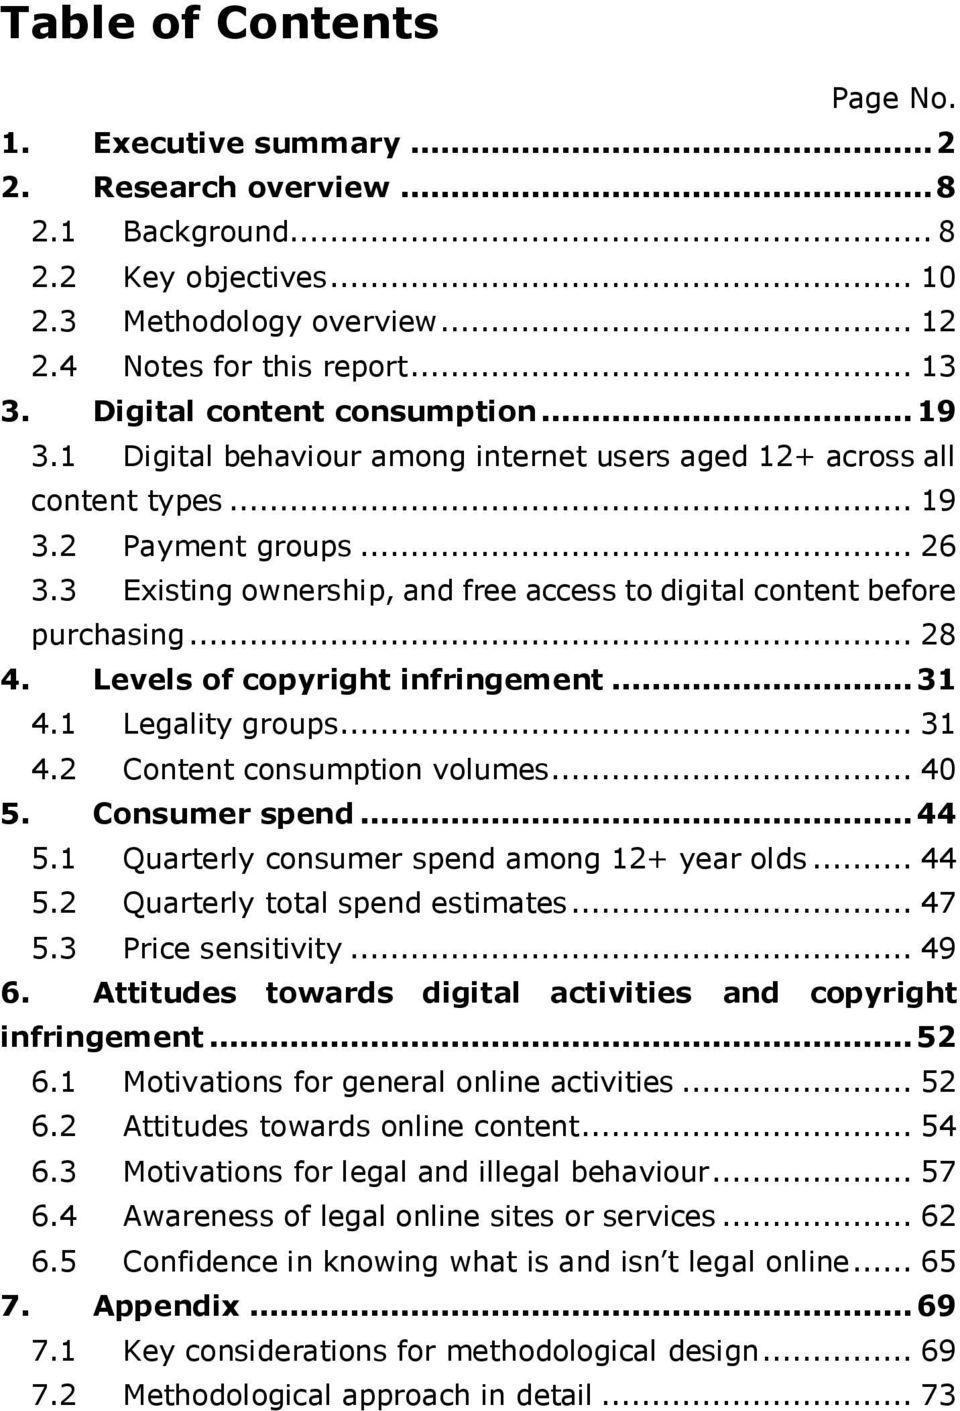 3 Existing ownership, and free access to digital content before purchasing... 28 4. Levels of copyright infringement... 31 4.1 Legality groups... 31 4.2 Content consumption volumes... 40 5.